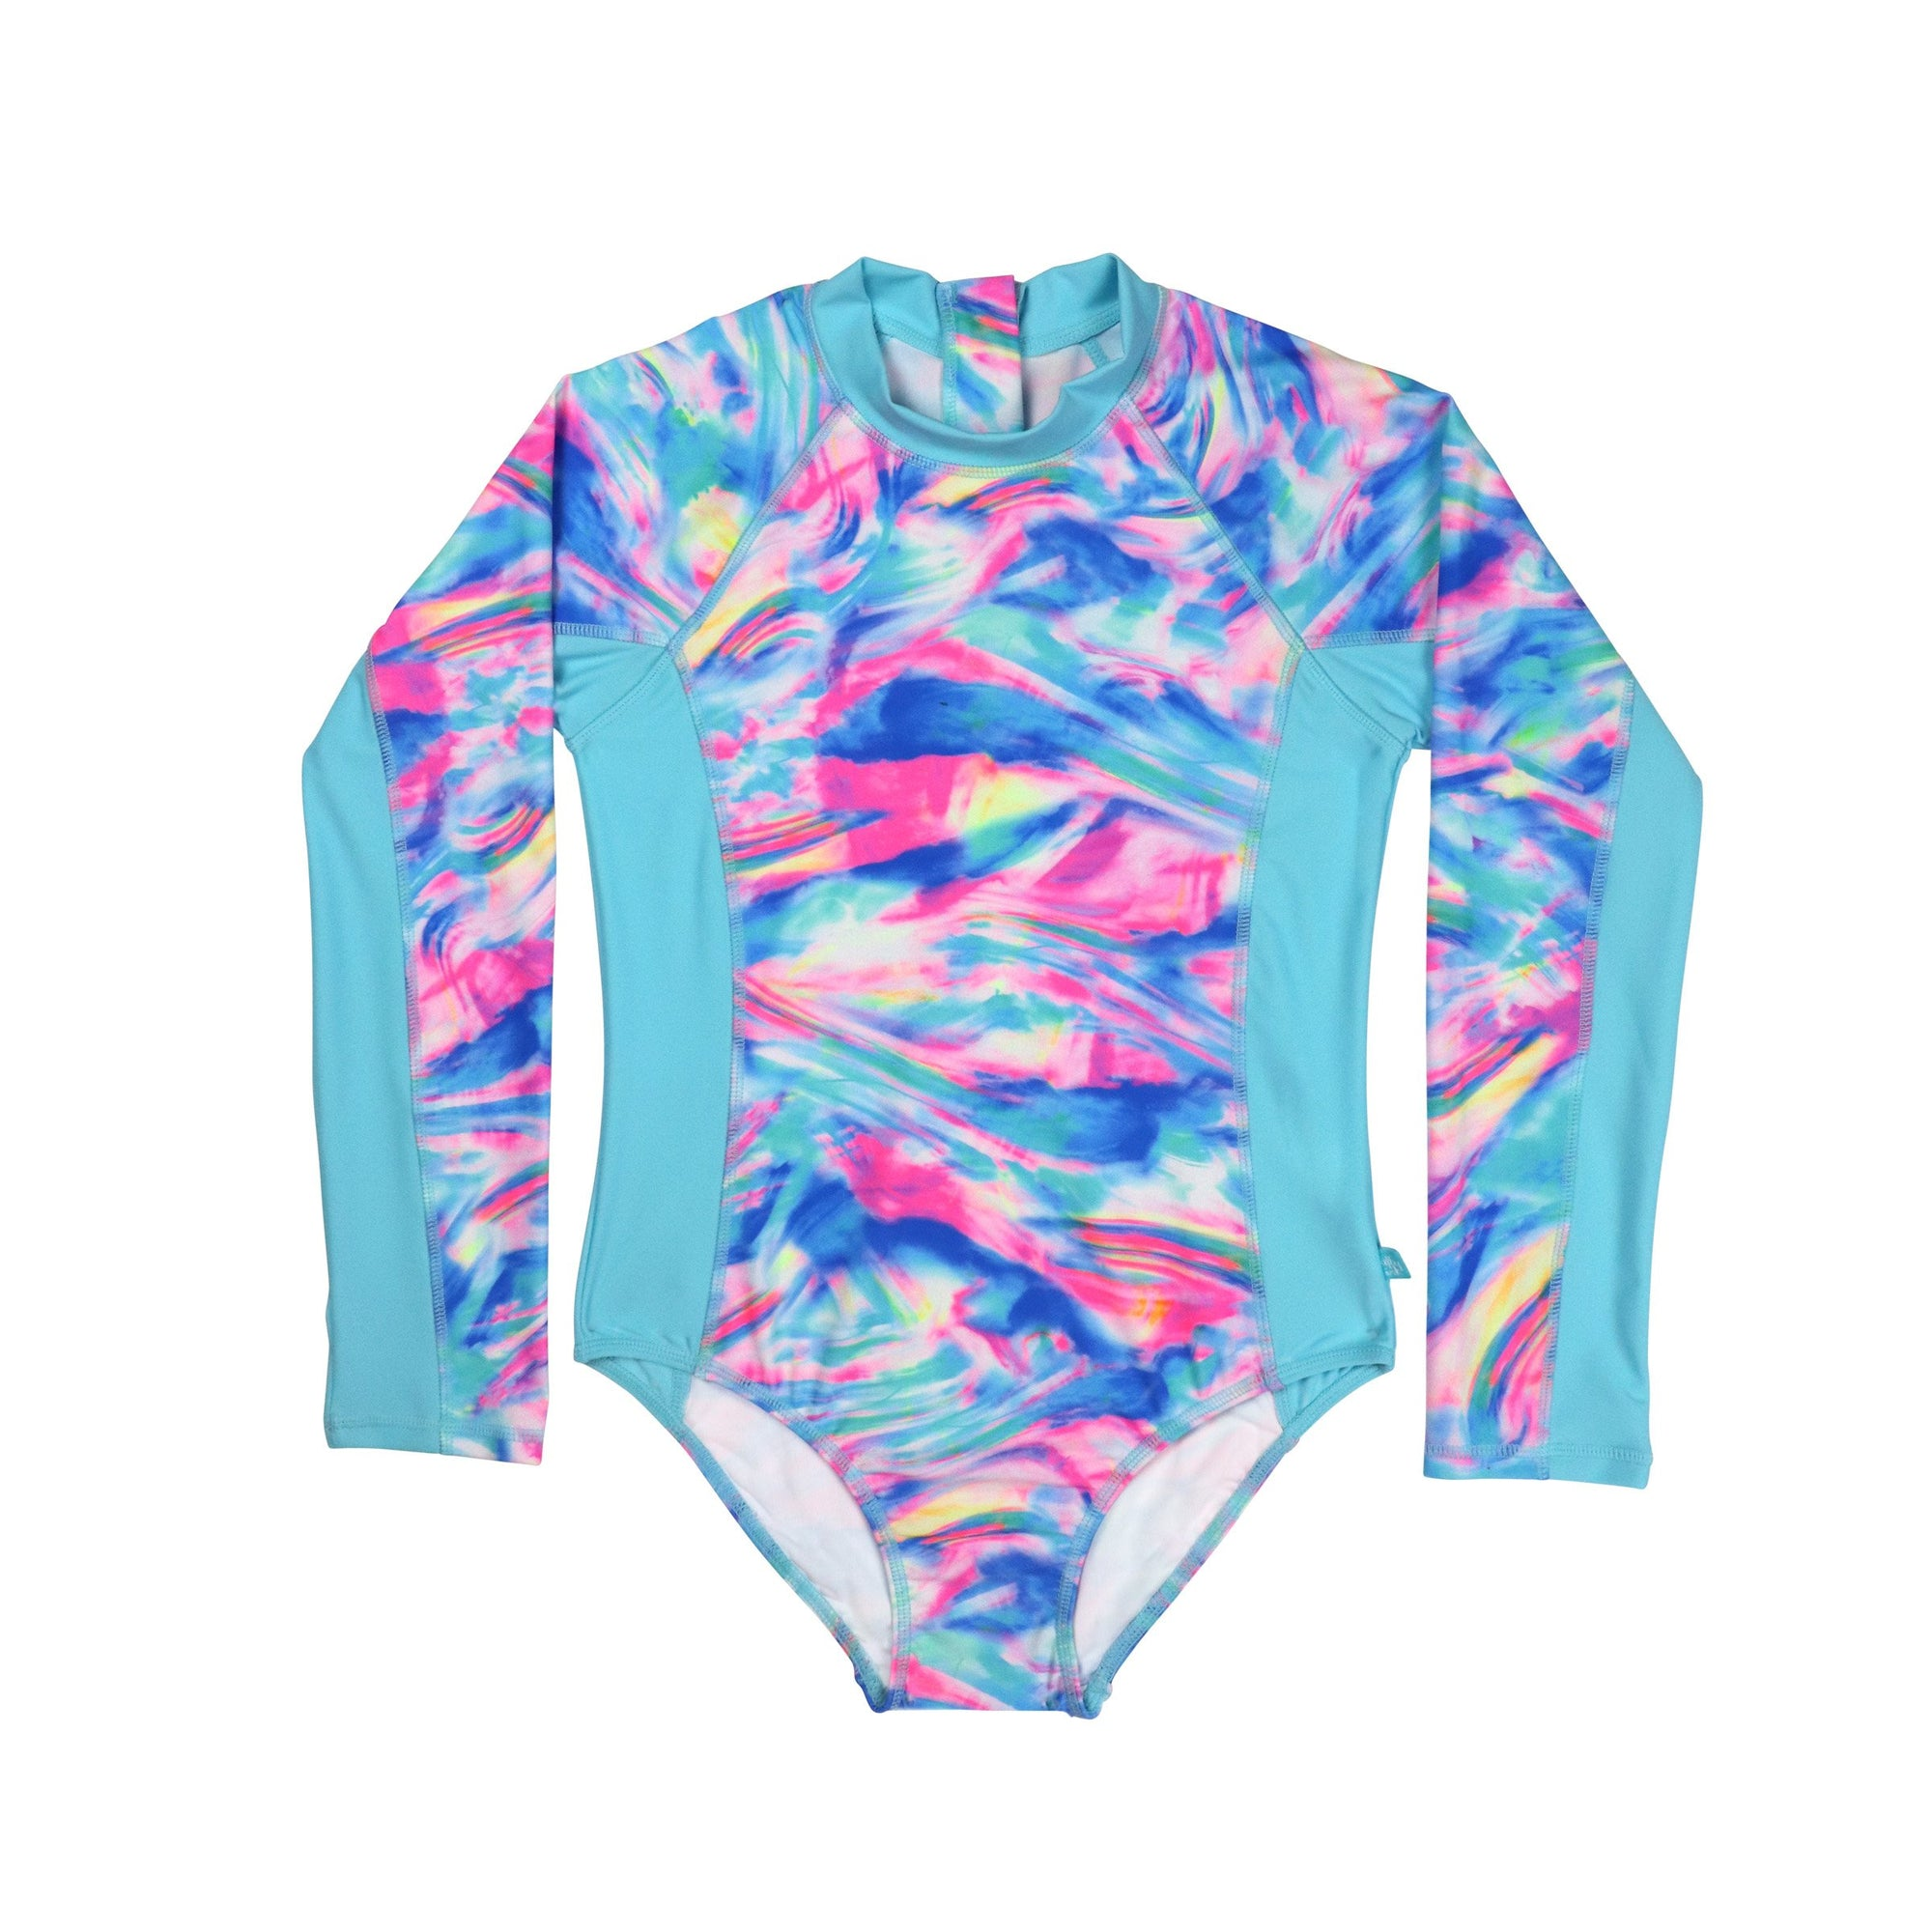 Rollergirl L/S Surfsuit GIRLS SWIMWEAR SALTY INK